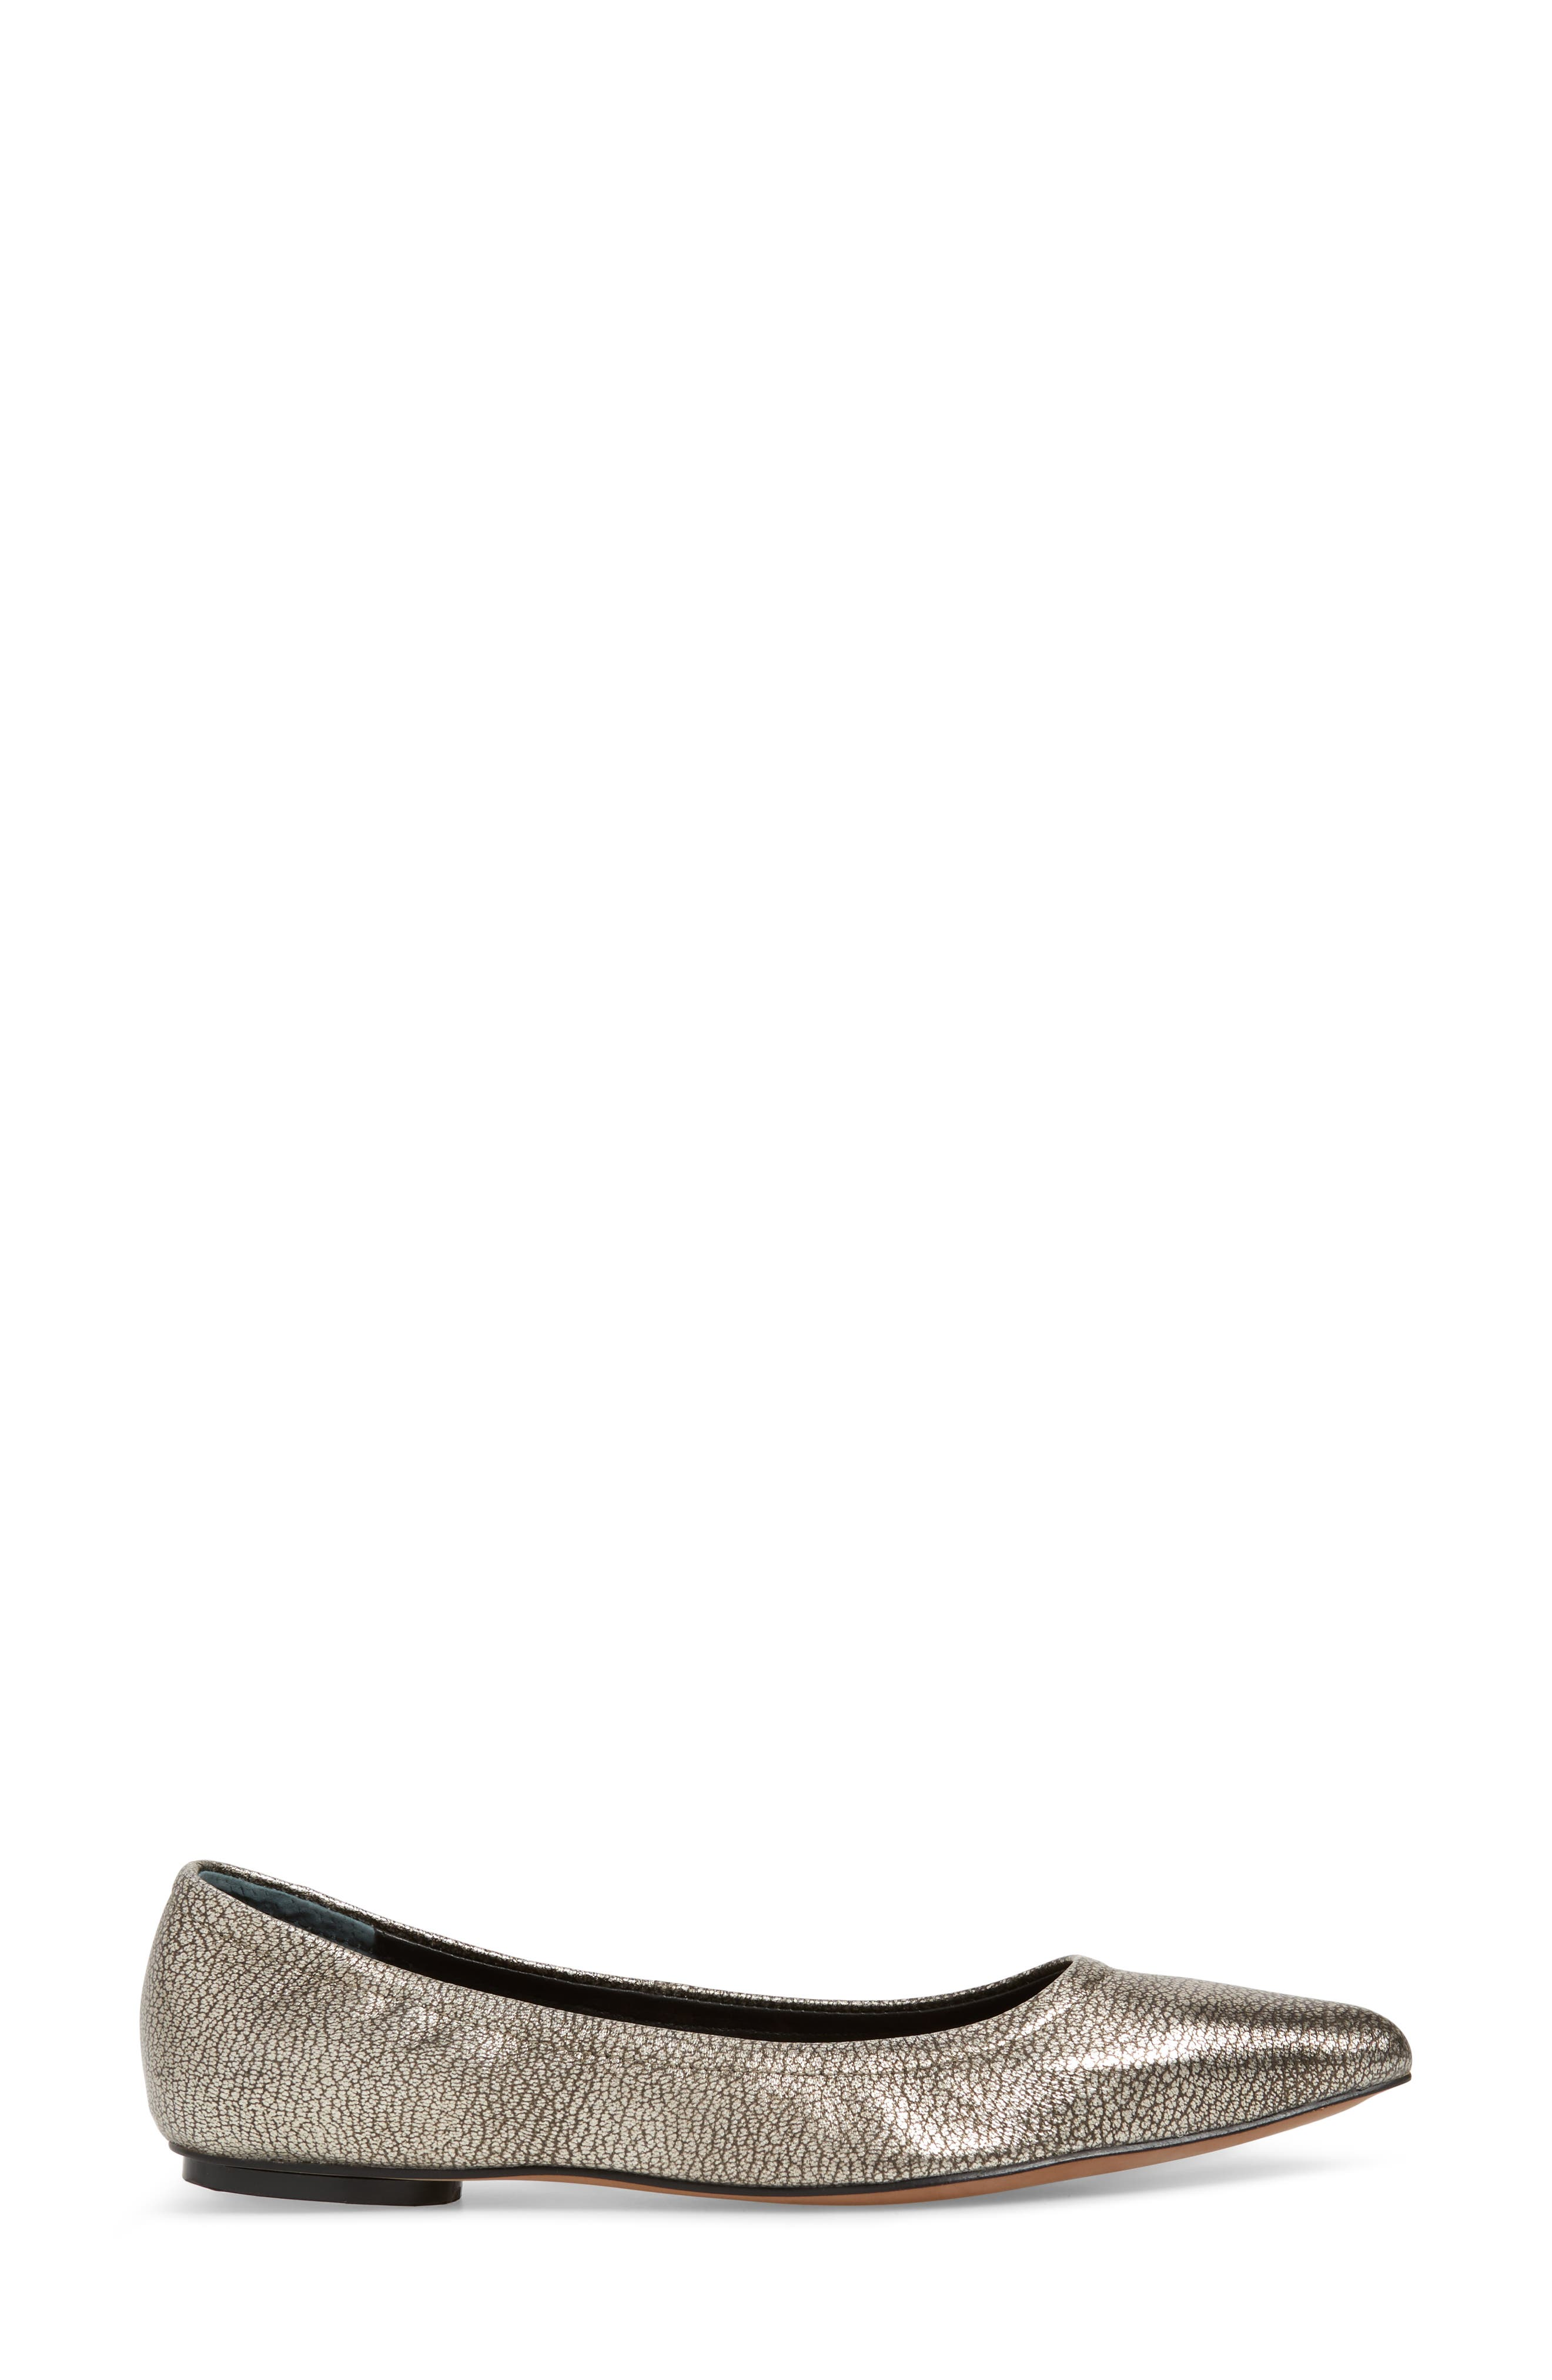 LINEA PAOLO, Nico Pointy Toe Flat, Alternate thumbnail 3, color, ANTHRACITE LEATHER